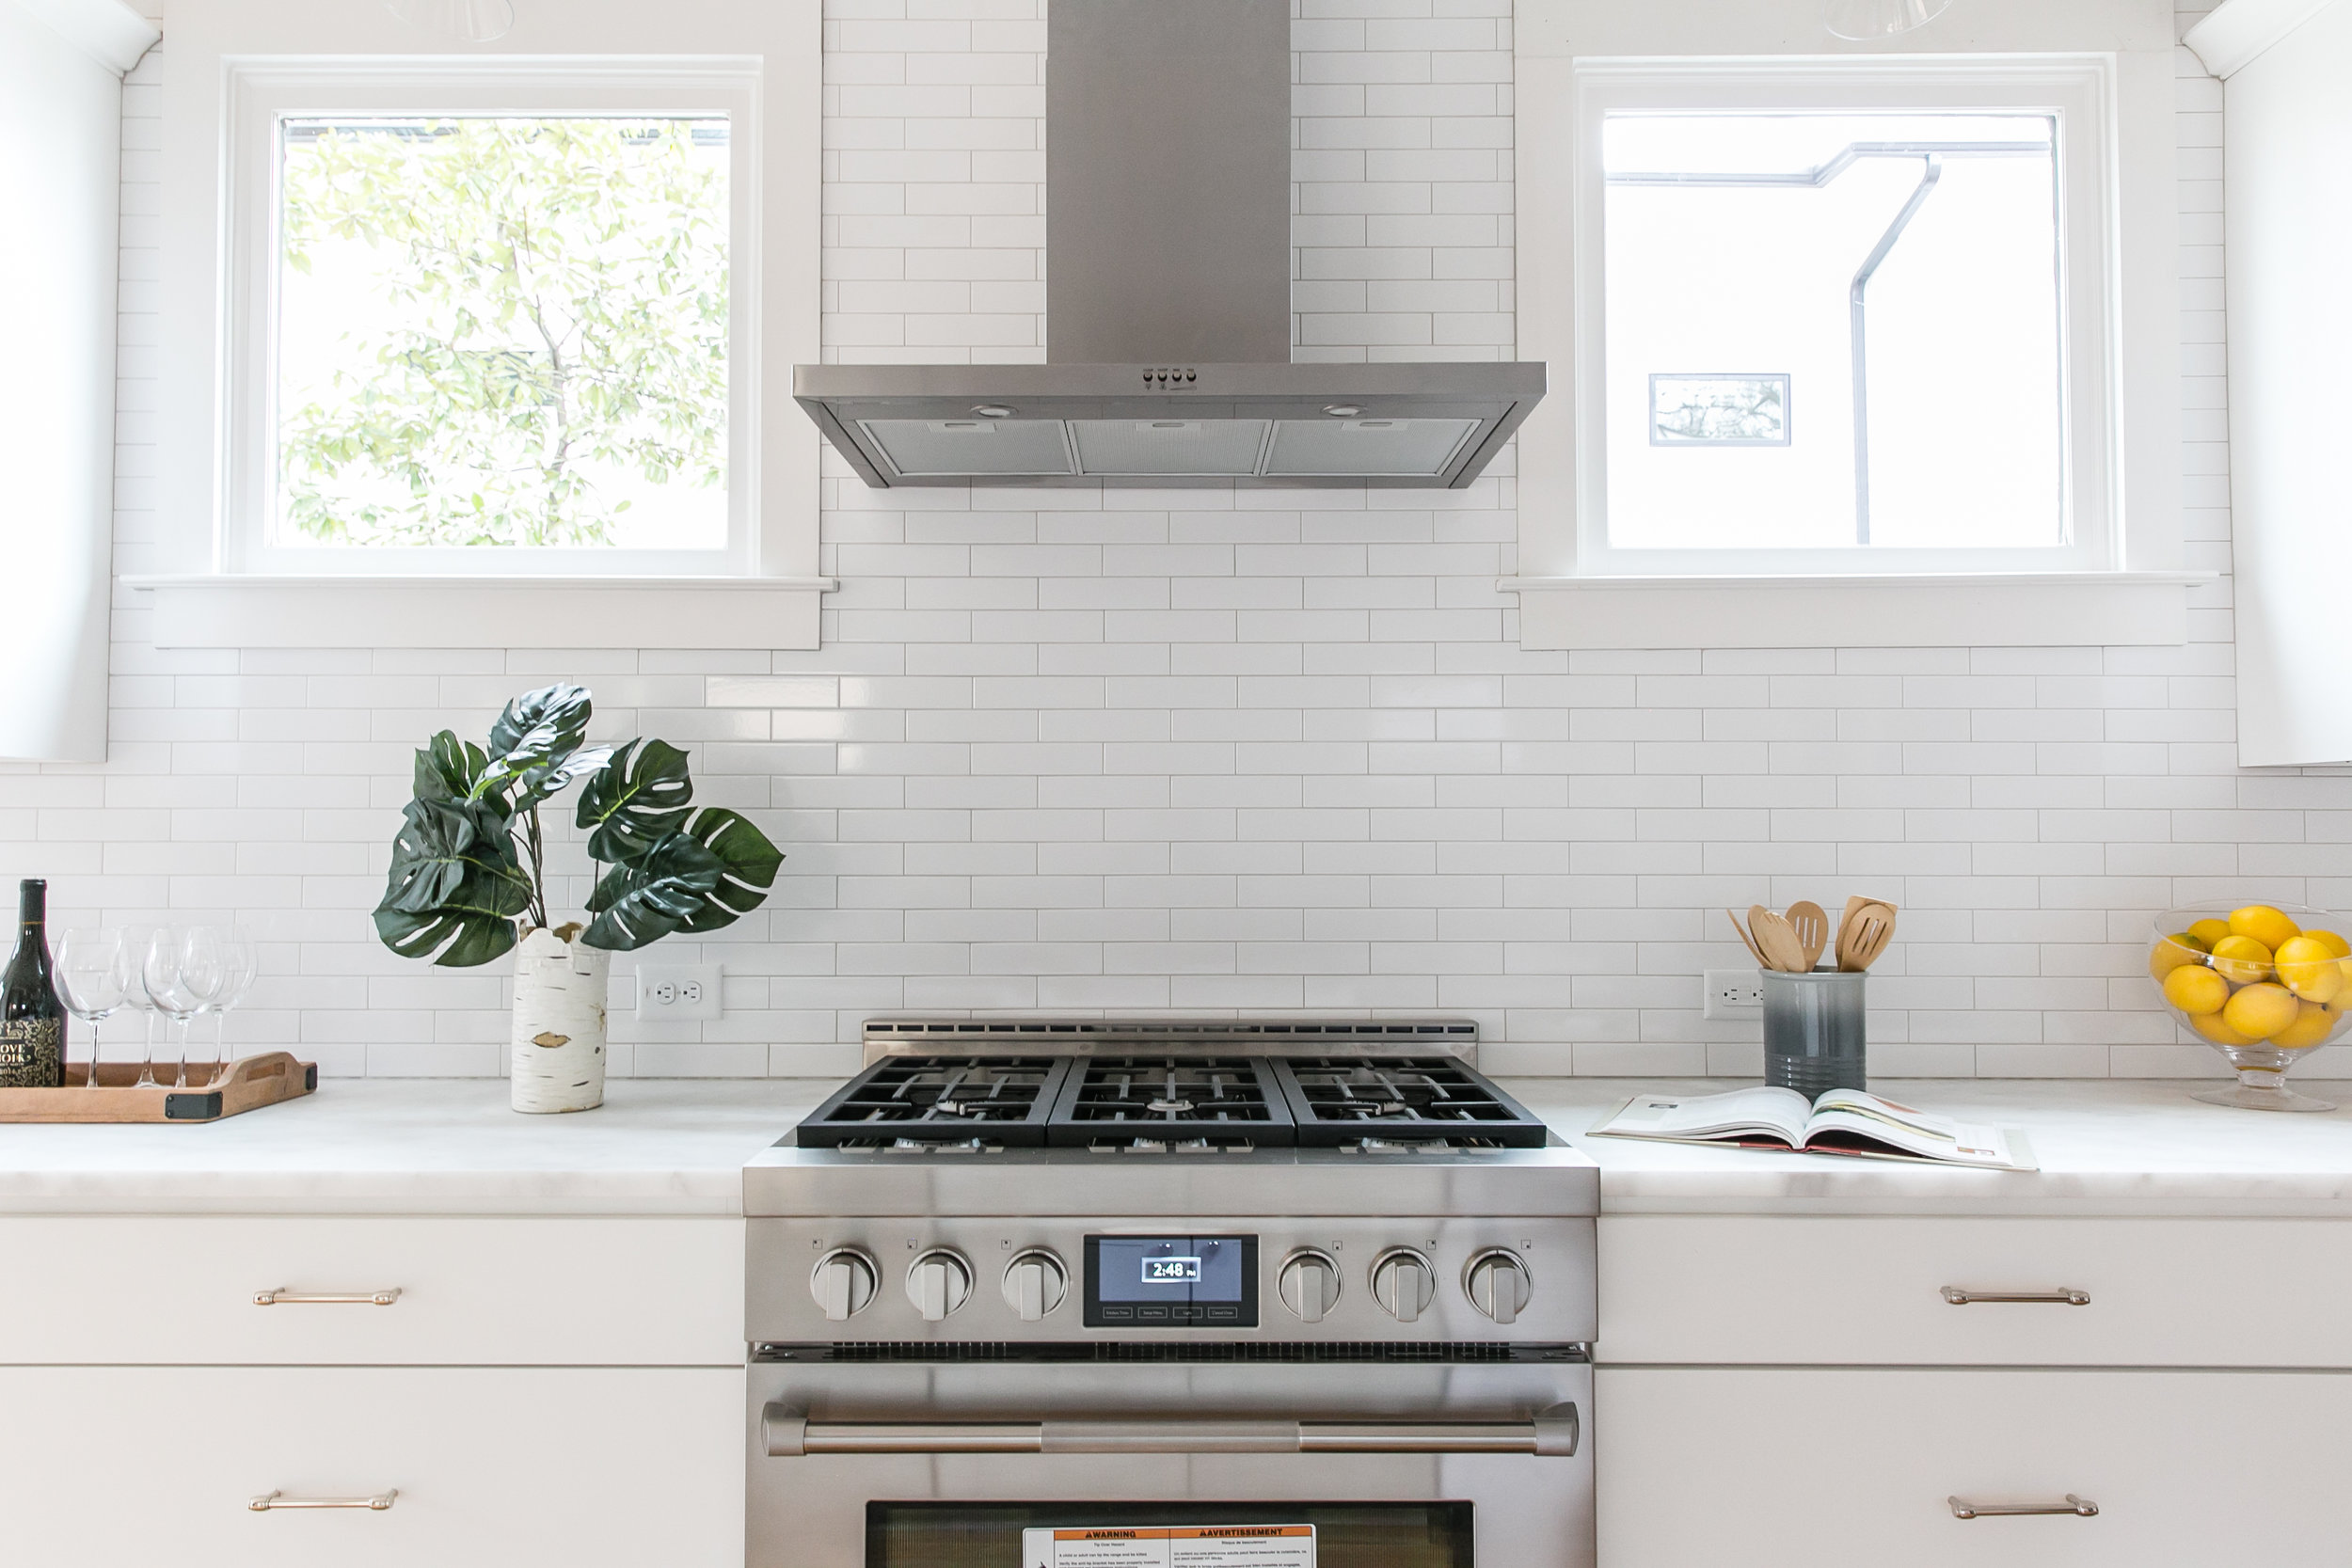 2711 Arbor-Kitchen Stove.jpg